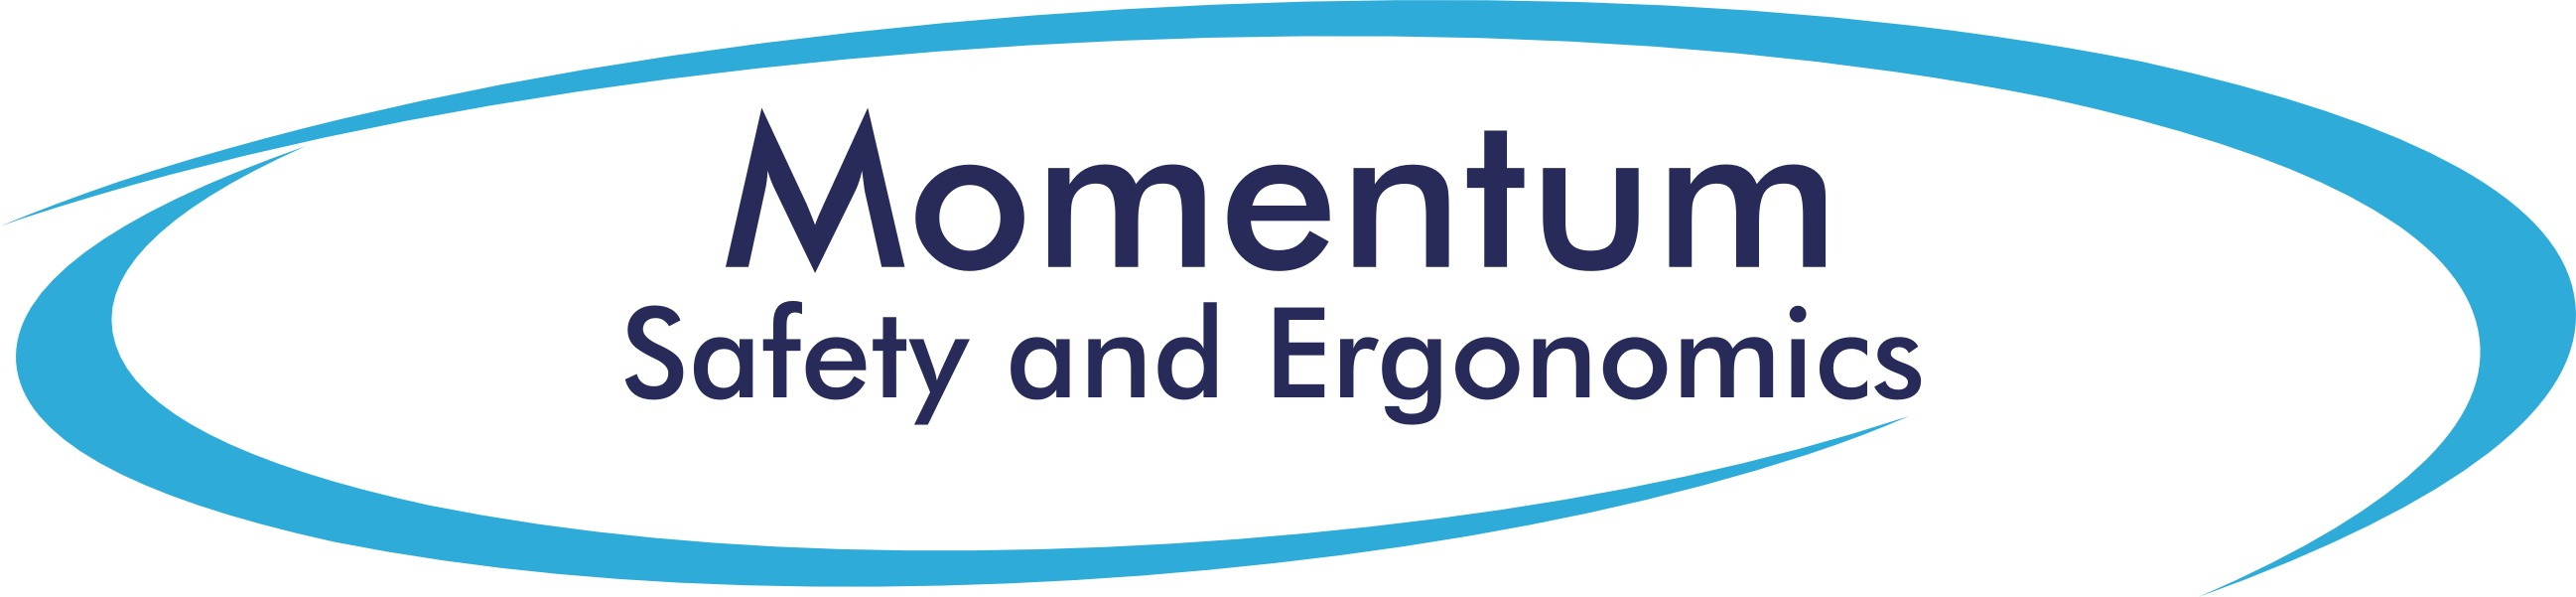 momentum safety logo